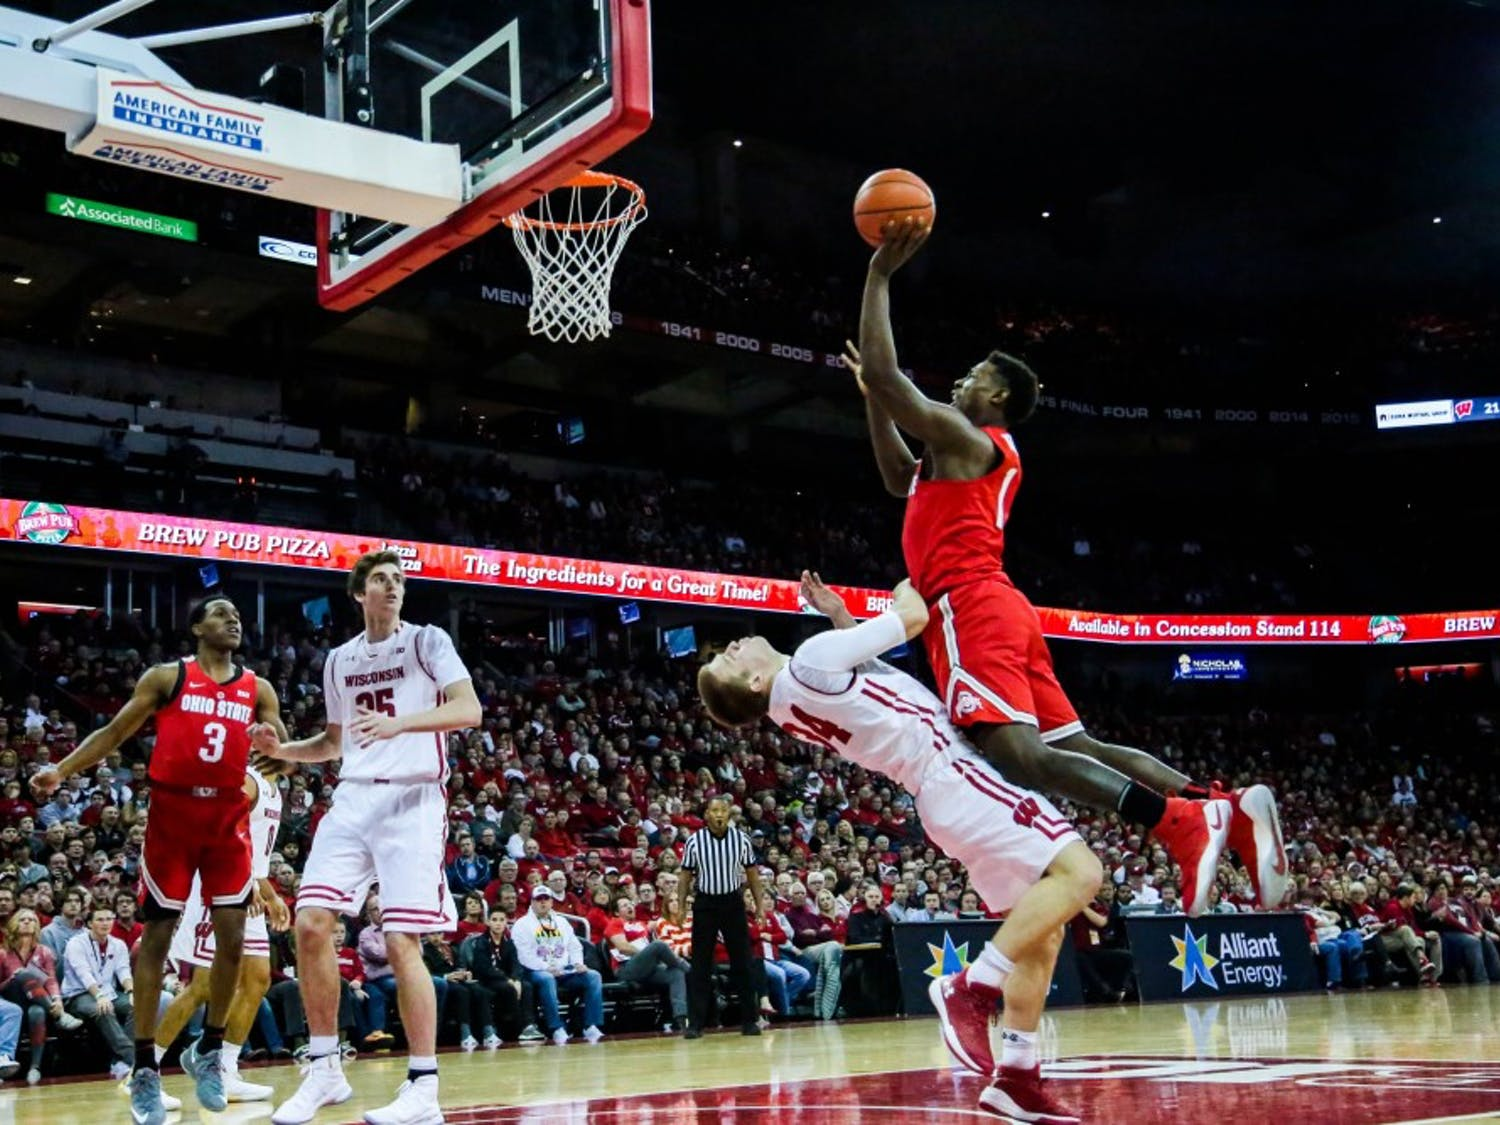 Ohio State dominated Wisconsin in UW's conference opener.